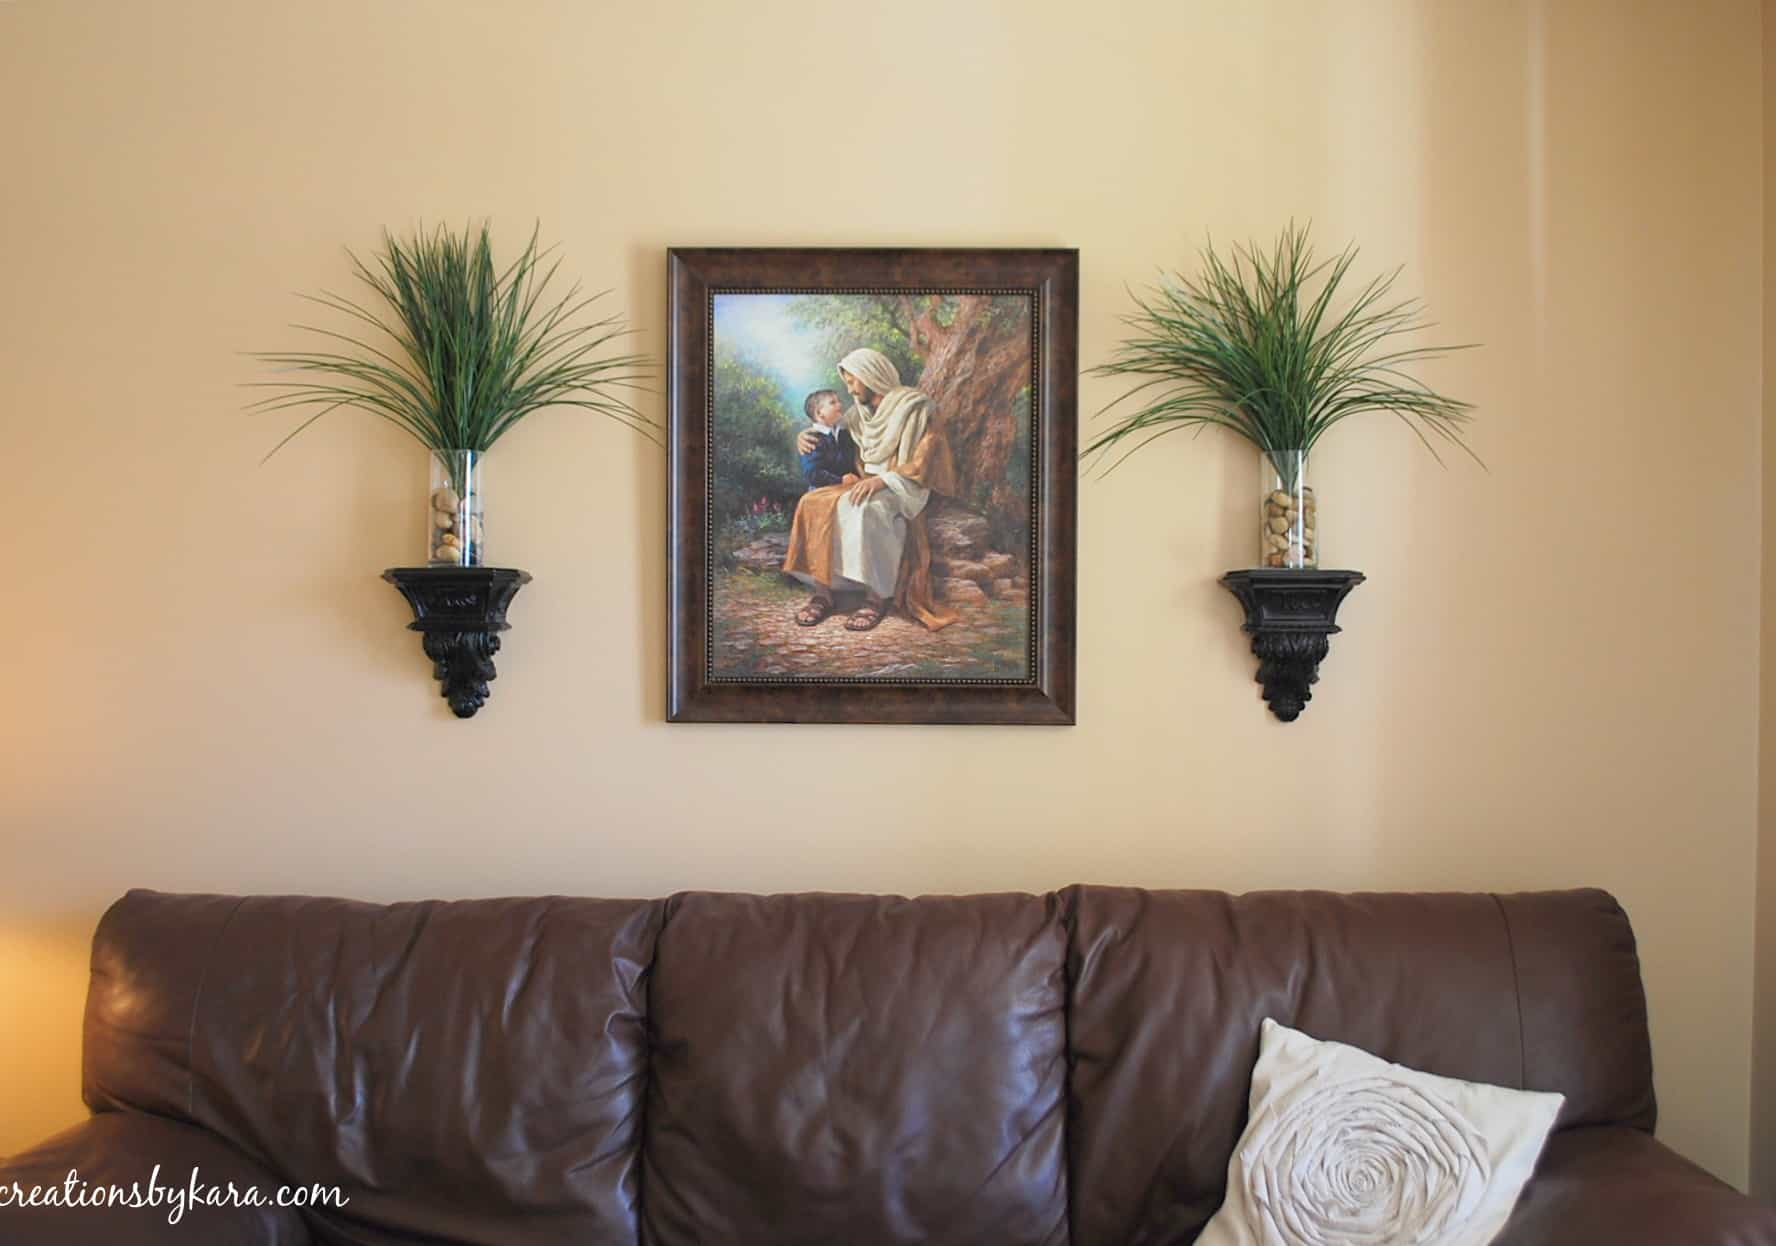 Living Room Re-Decorating: Wall Decor